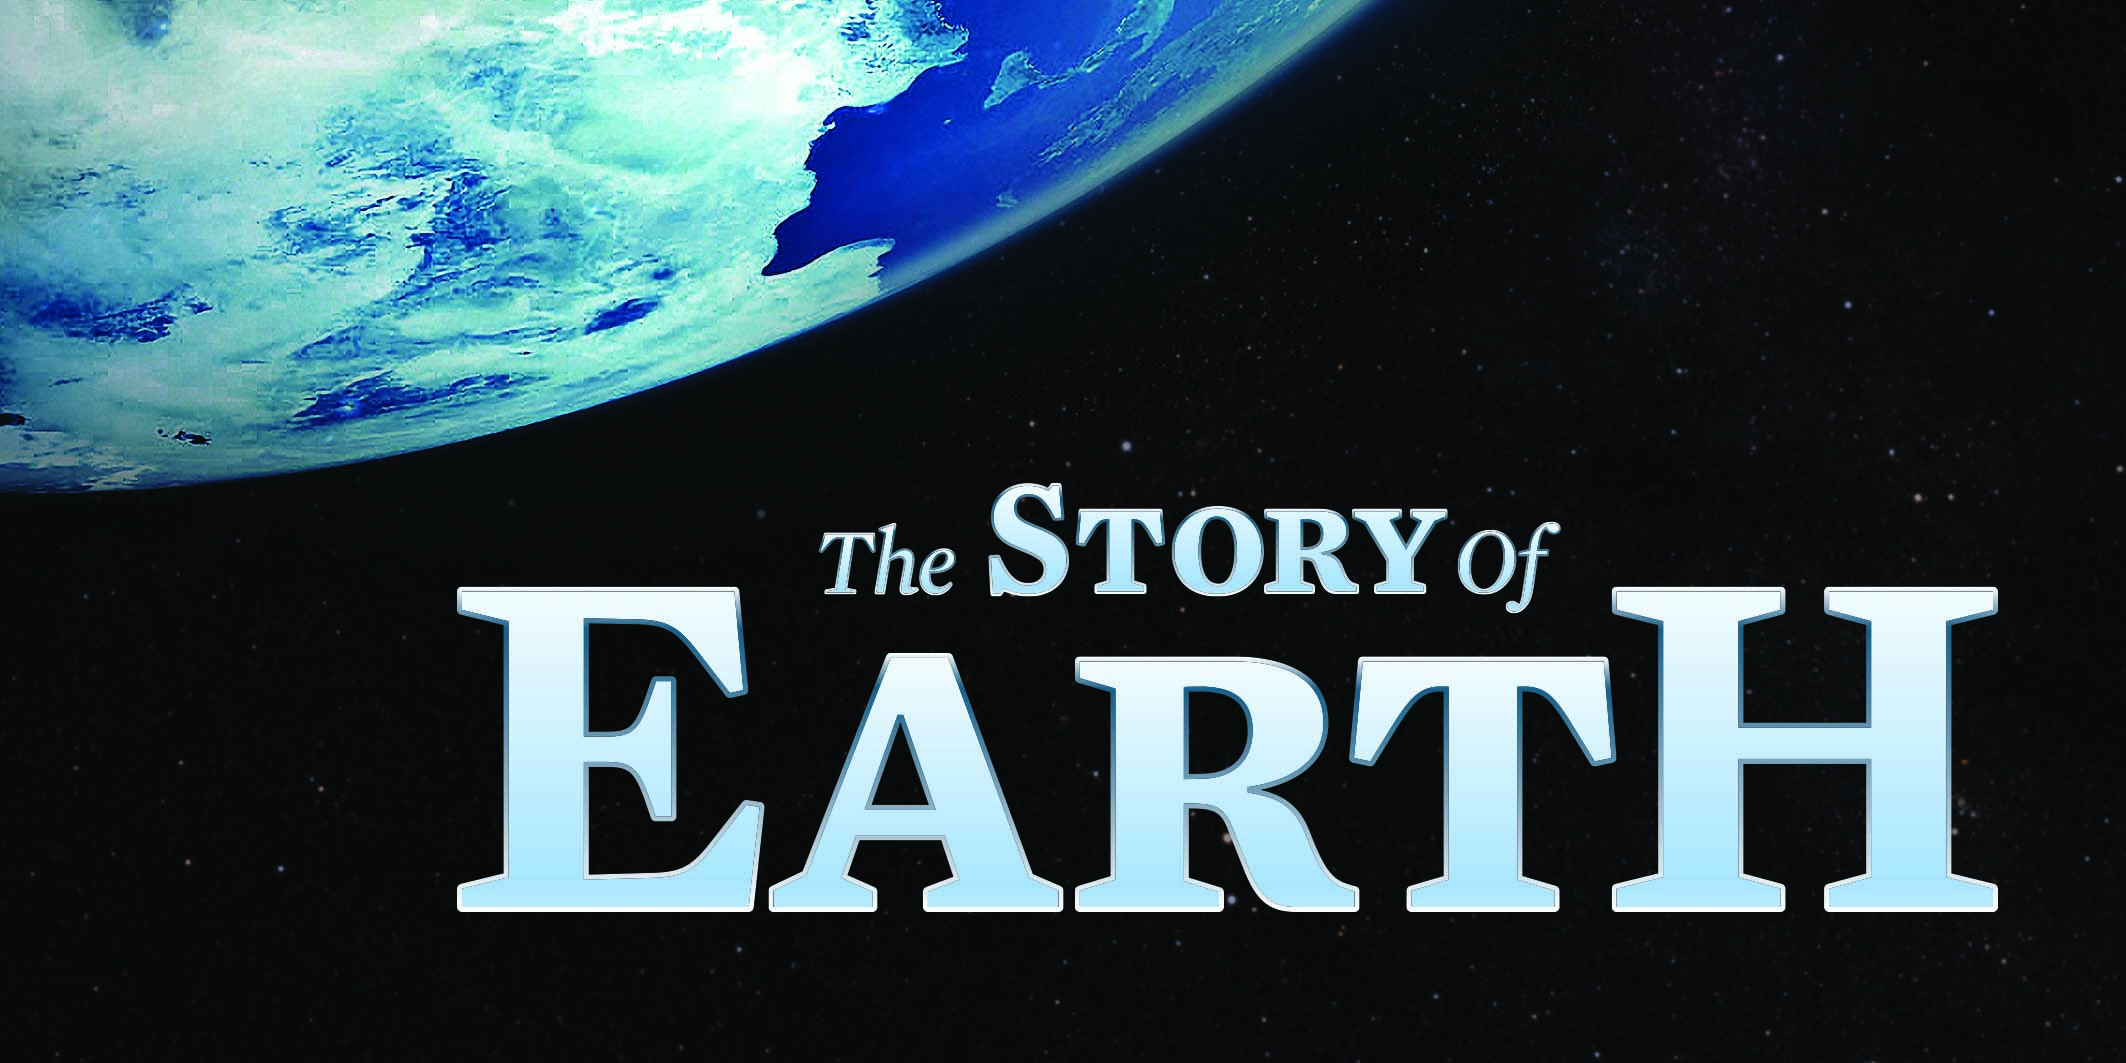 Story of earth header.jpg